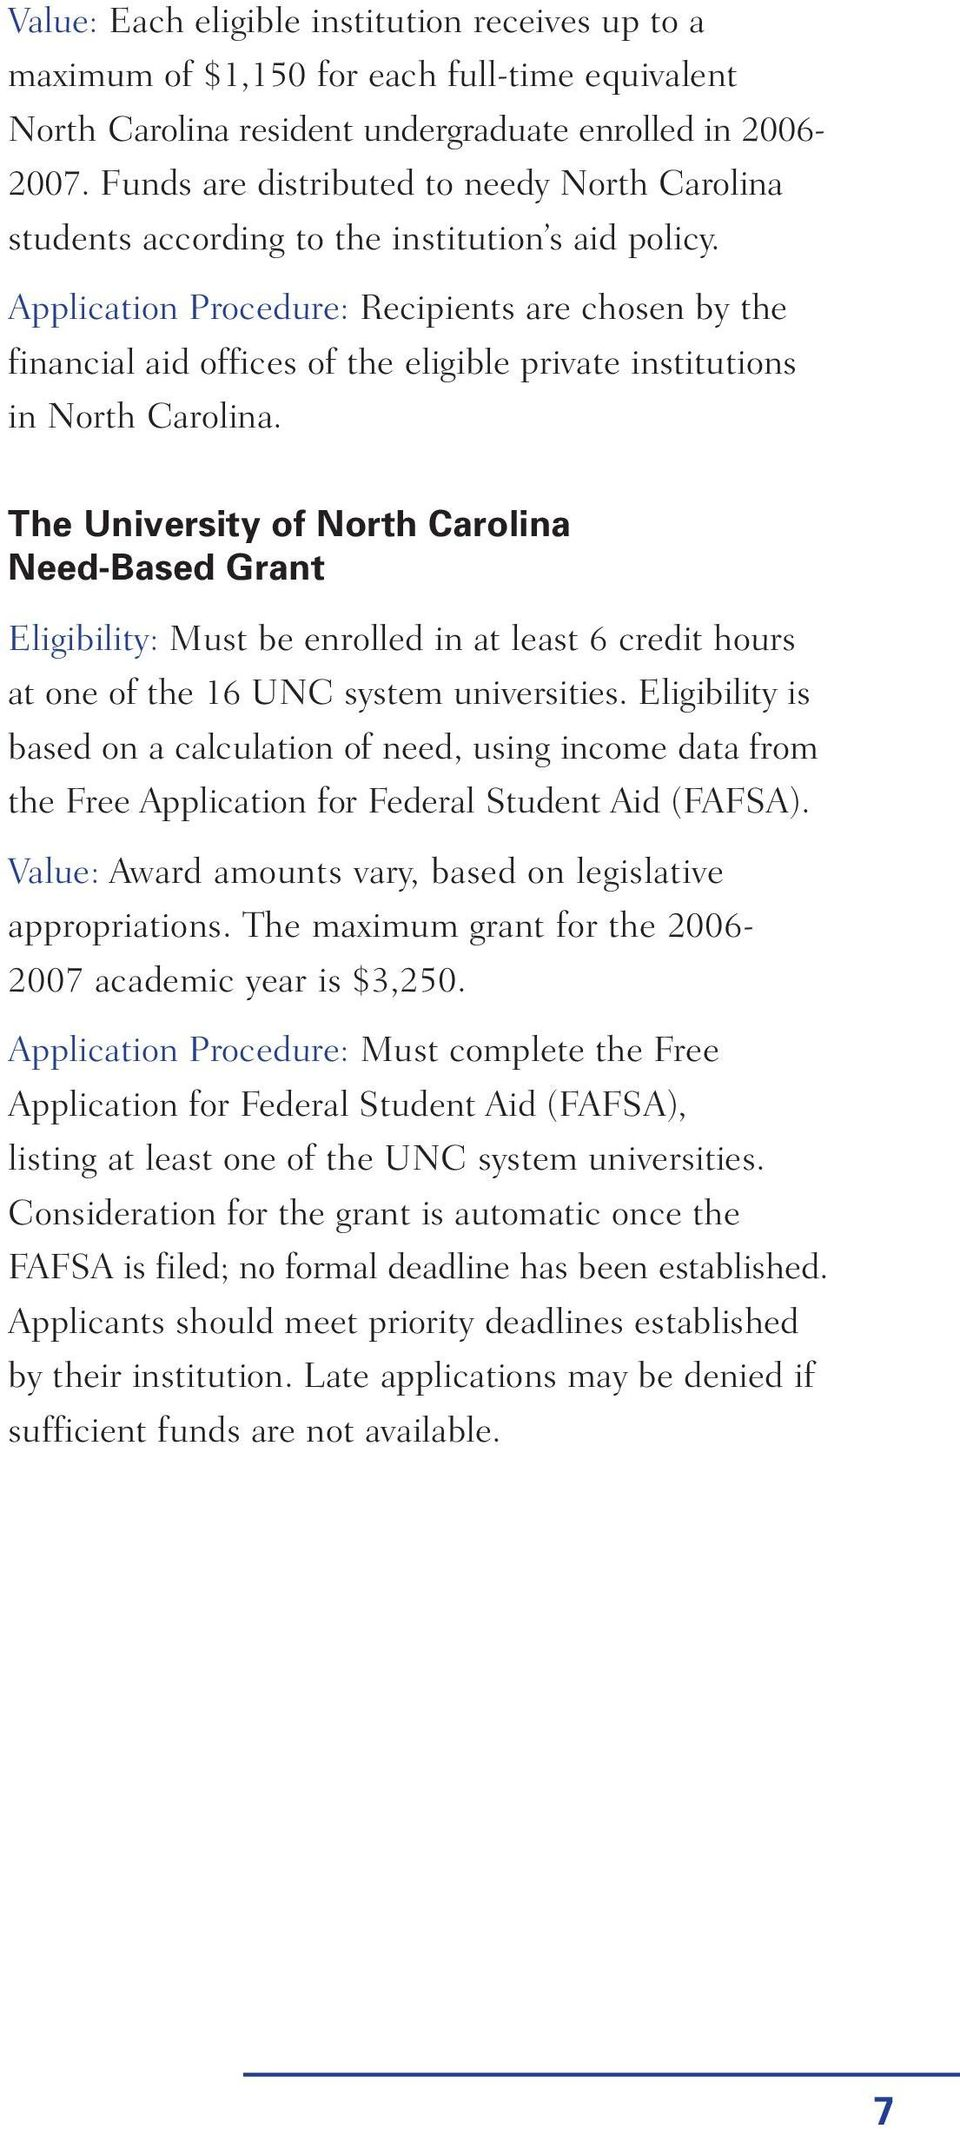 Application Procedure: Recipients are chosen by the financial aid offices of the eligible private institutions in North Carolina.